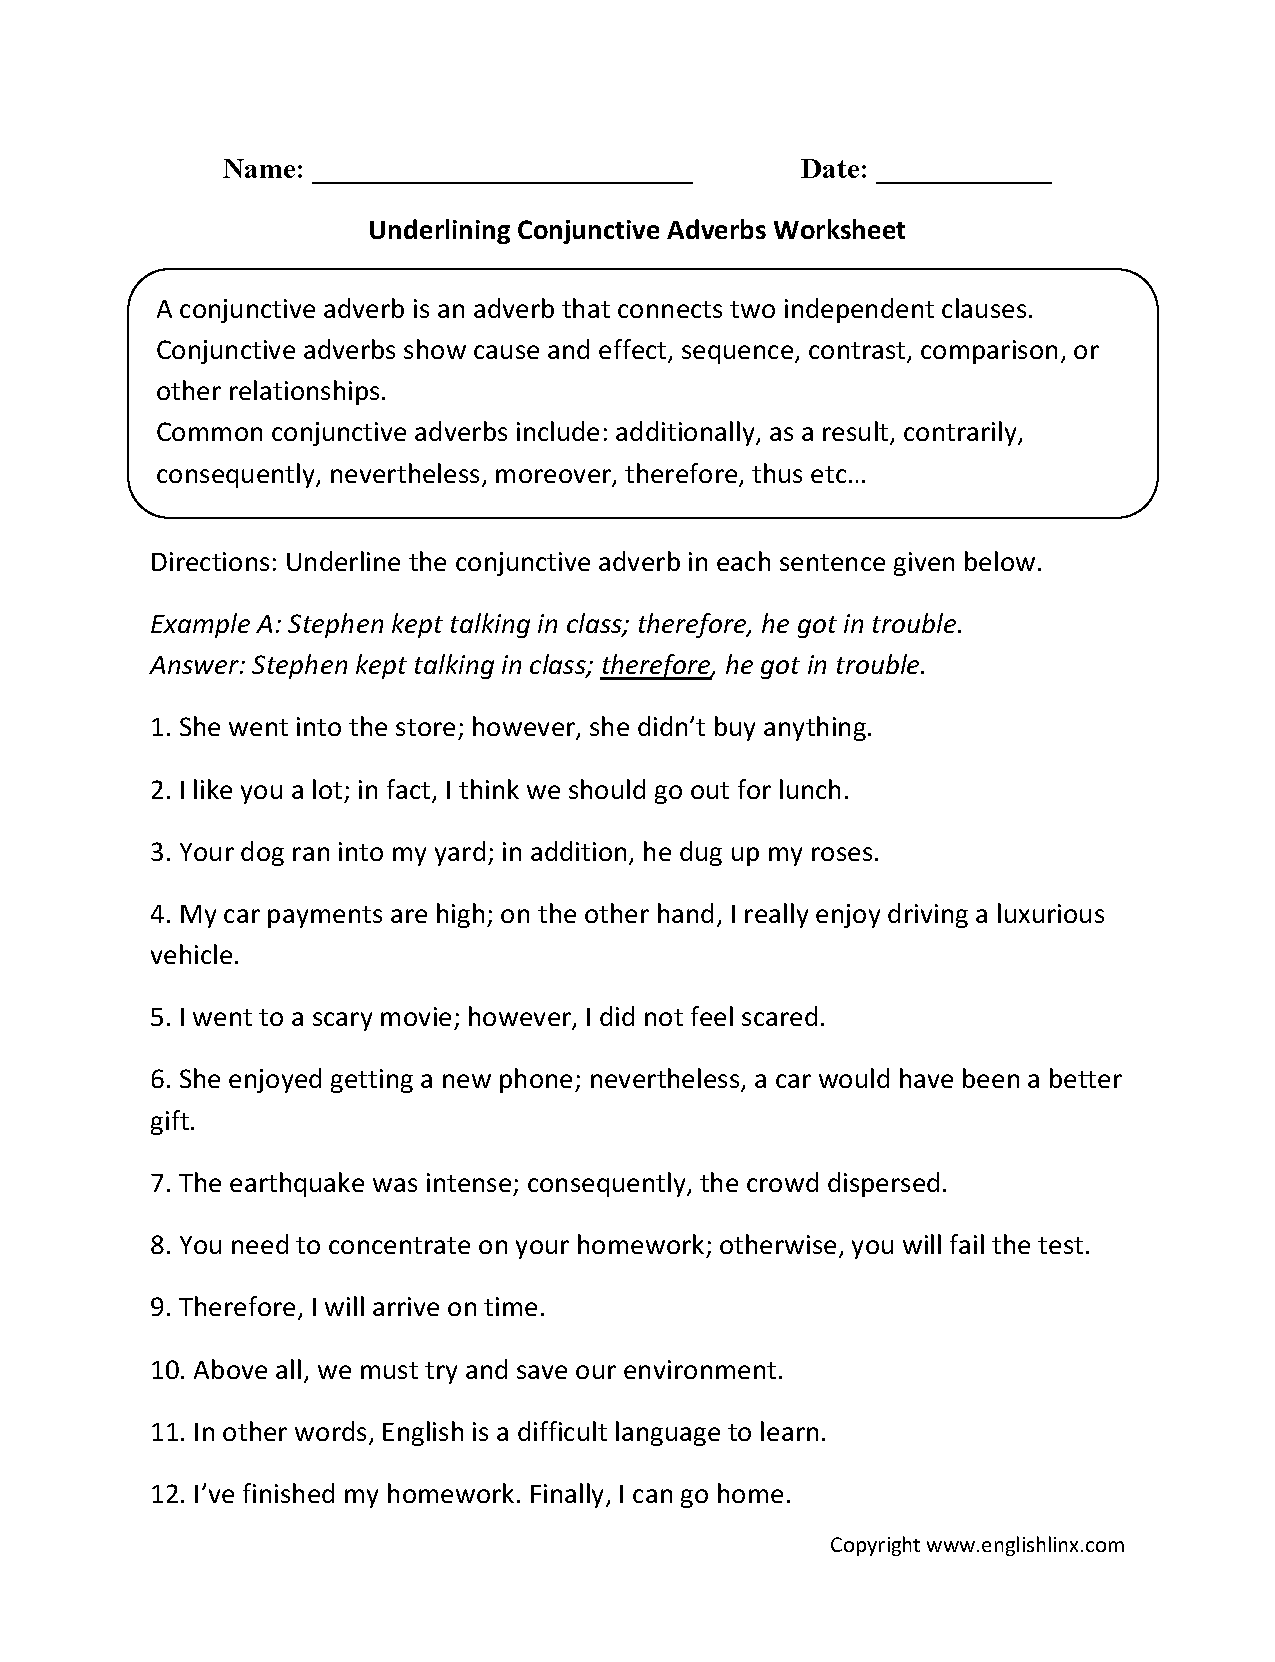 Weirdmailus  Terrific Englishlinxcom  Conjunctions Worksheets With Luxury Worksheet With Archaic Stem And Leaf Plot Worksheet Answers Also Summer Cut And Paste Worksheets In Addition Standard Notation Worksheet And Vocabulary Practice Worksheets As Well As Pdf Worksheets On Adjectives Additionally Math Worksheets For Rd Grade Word Problems From Englishlinxcom With Weirdmailus  Luxury Englishlinxcom  Conjunctions Worksheets With Archaic Worksheet And Terrific Stem And Leaf Plot Worksheet Answers Also Summer Cut And Paste Worksheets In Addition Standard Notation Worksheet From Englishlinxcom